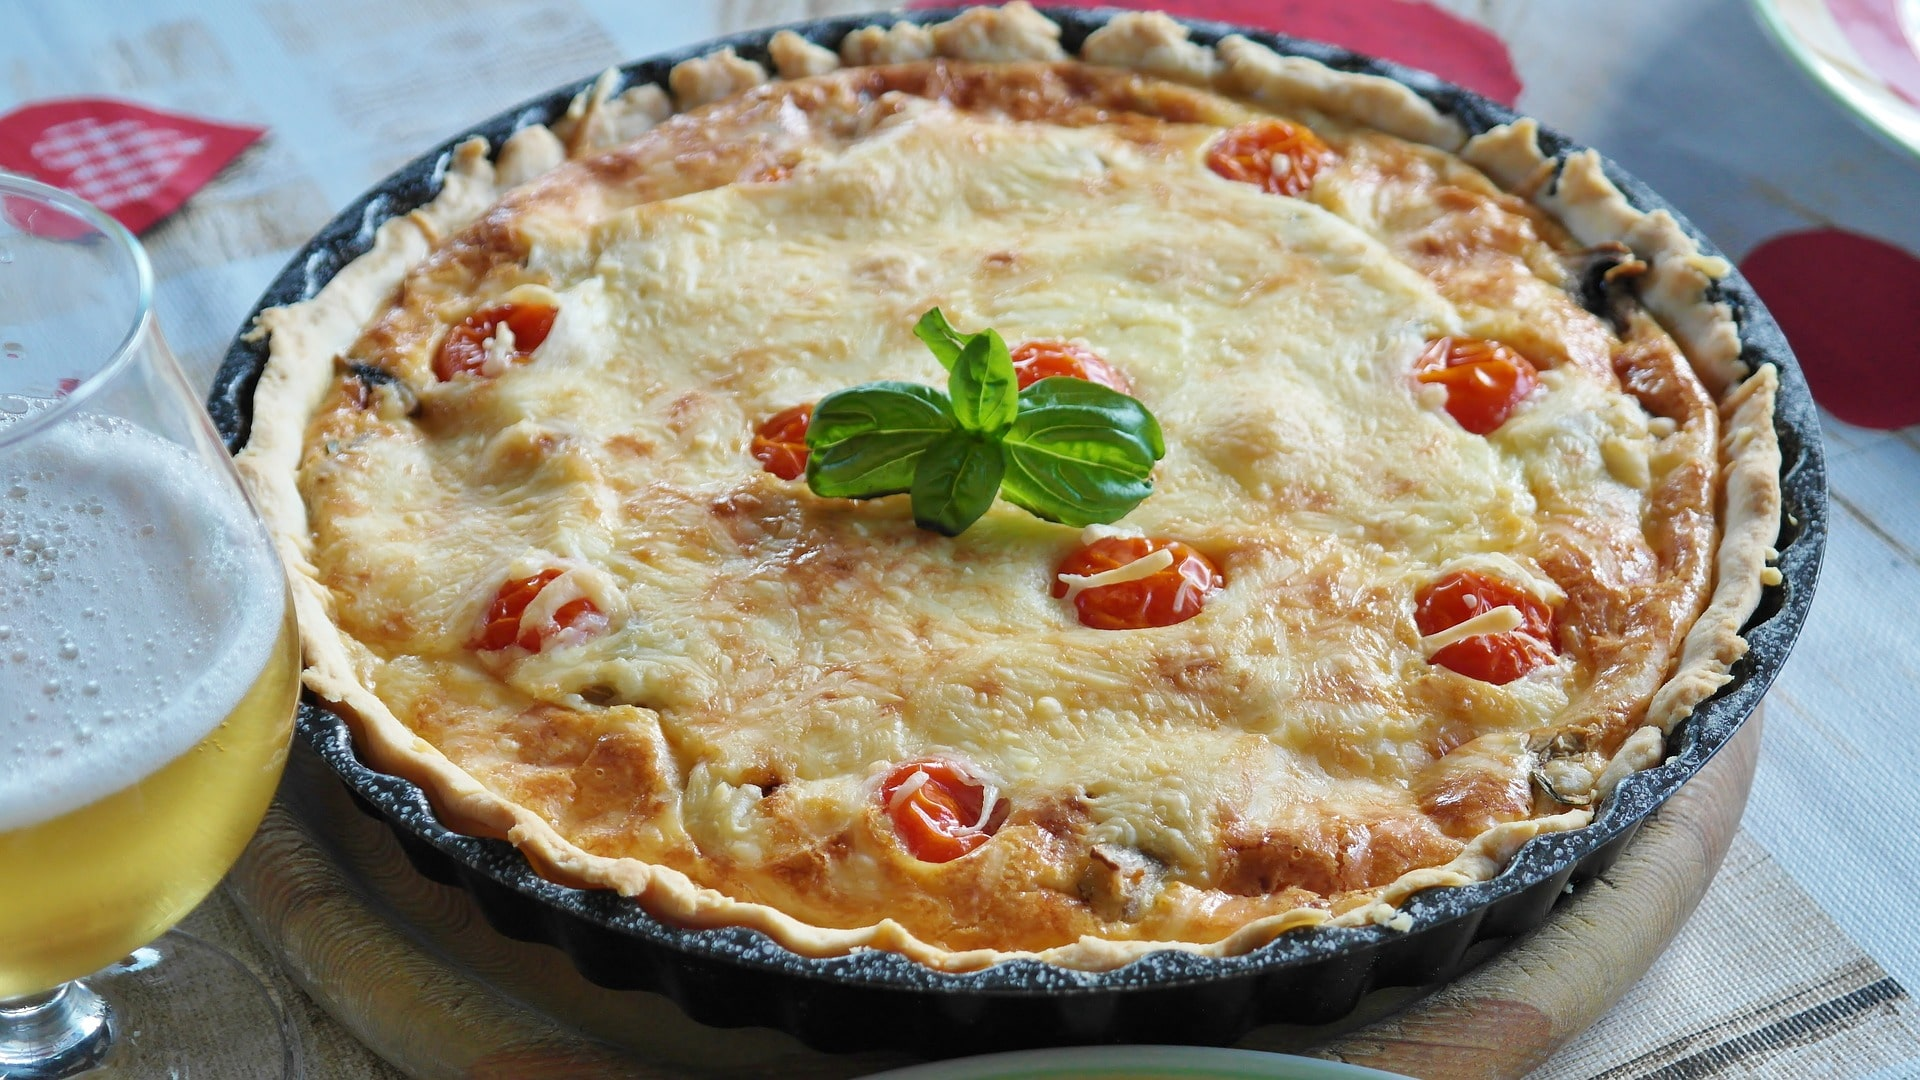 bacon and leek quiche - Coeliac disease awareness week is the perfect opportunity to give gluten free pastry a go. Jamie Oliver uses bacon and leeks but you can add your own favourite veggies and meats to make a delicious quiche.*Image shown is not from the recipe provided.